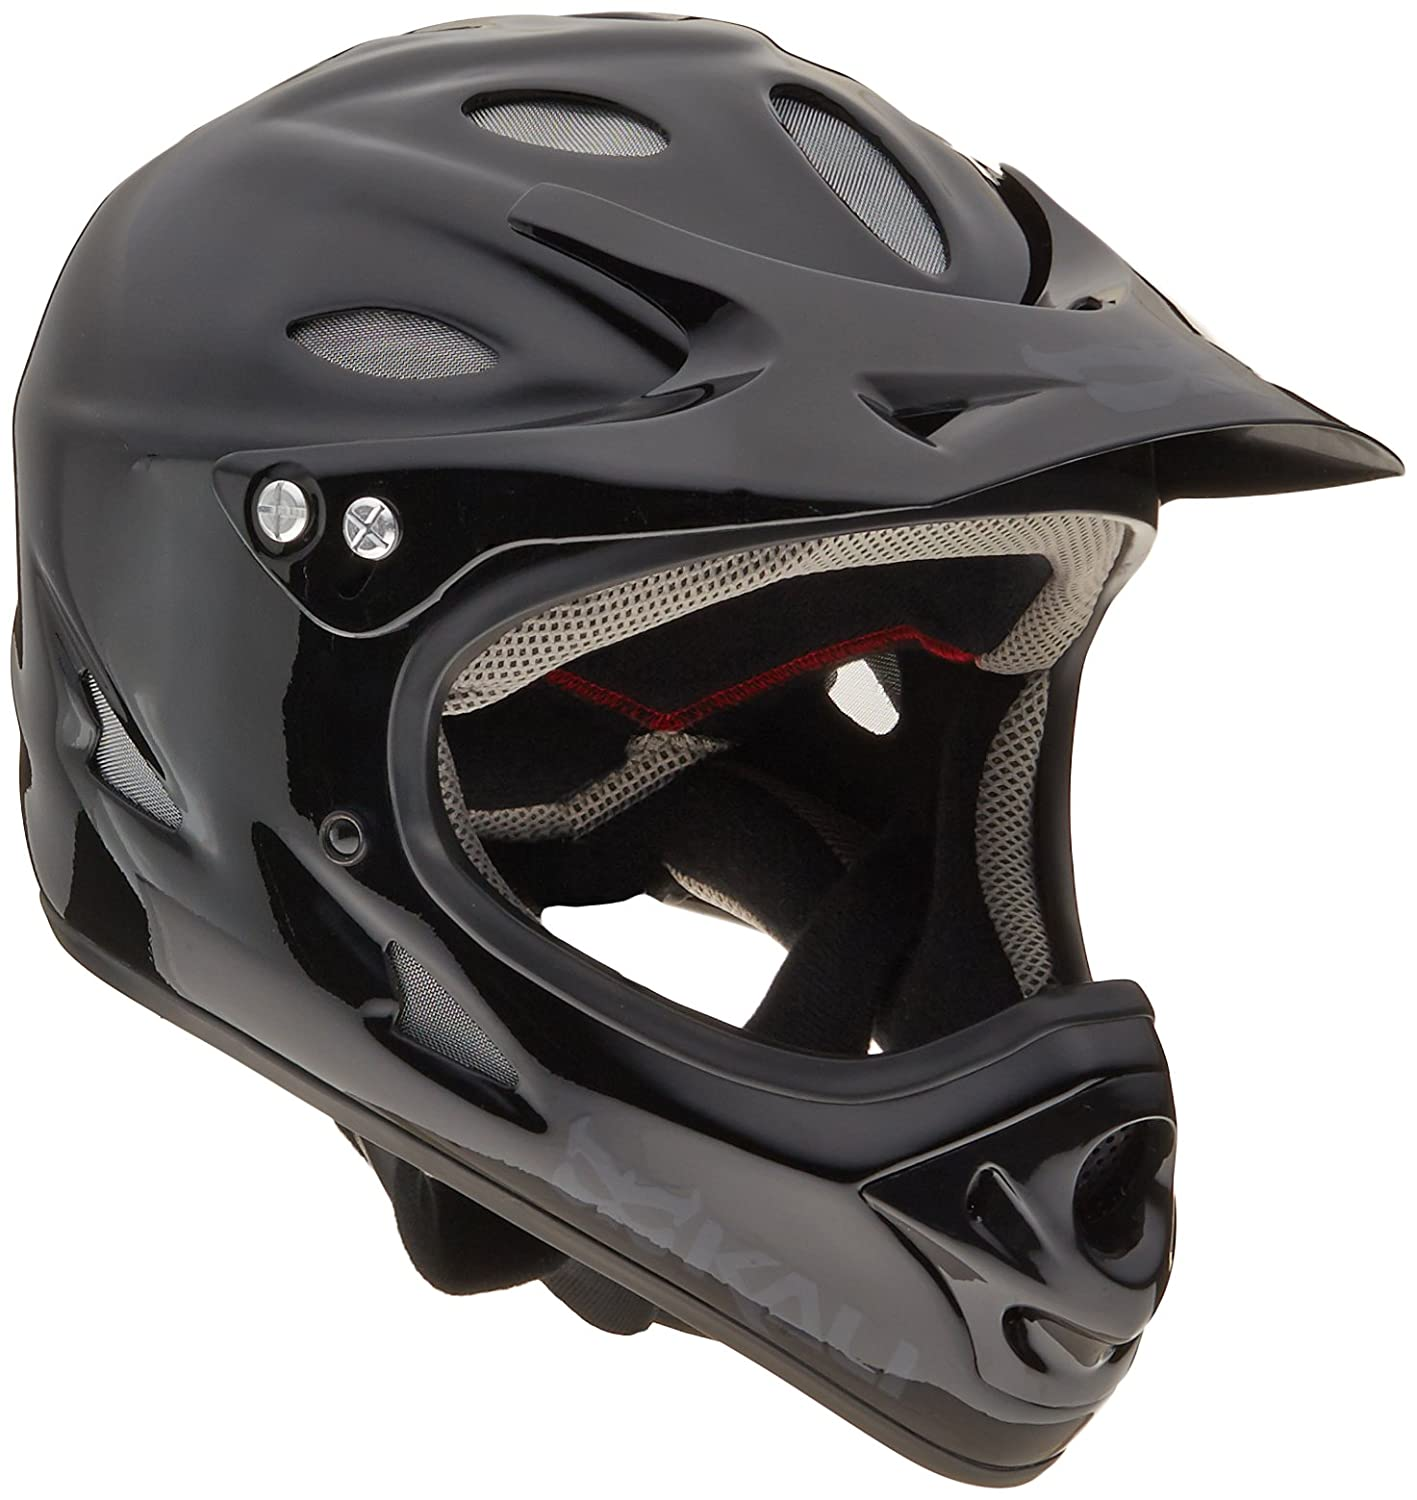 Kali Protectives US Savara Bike Helmet